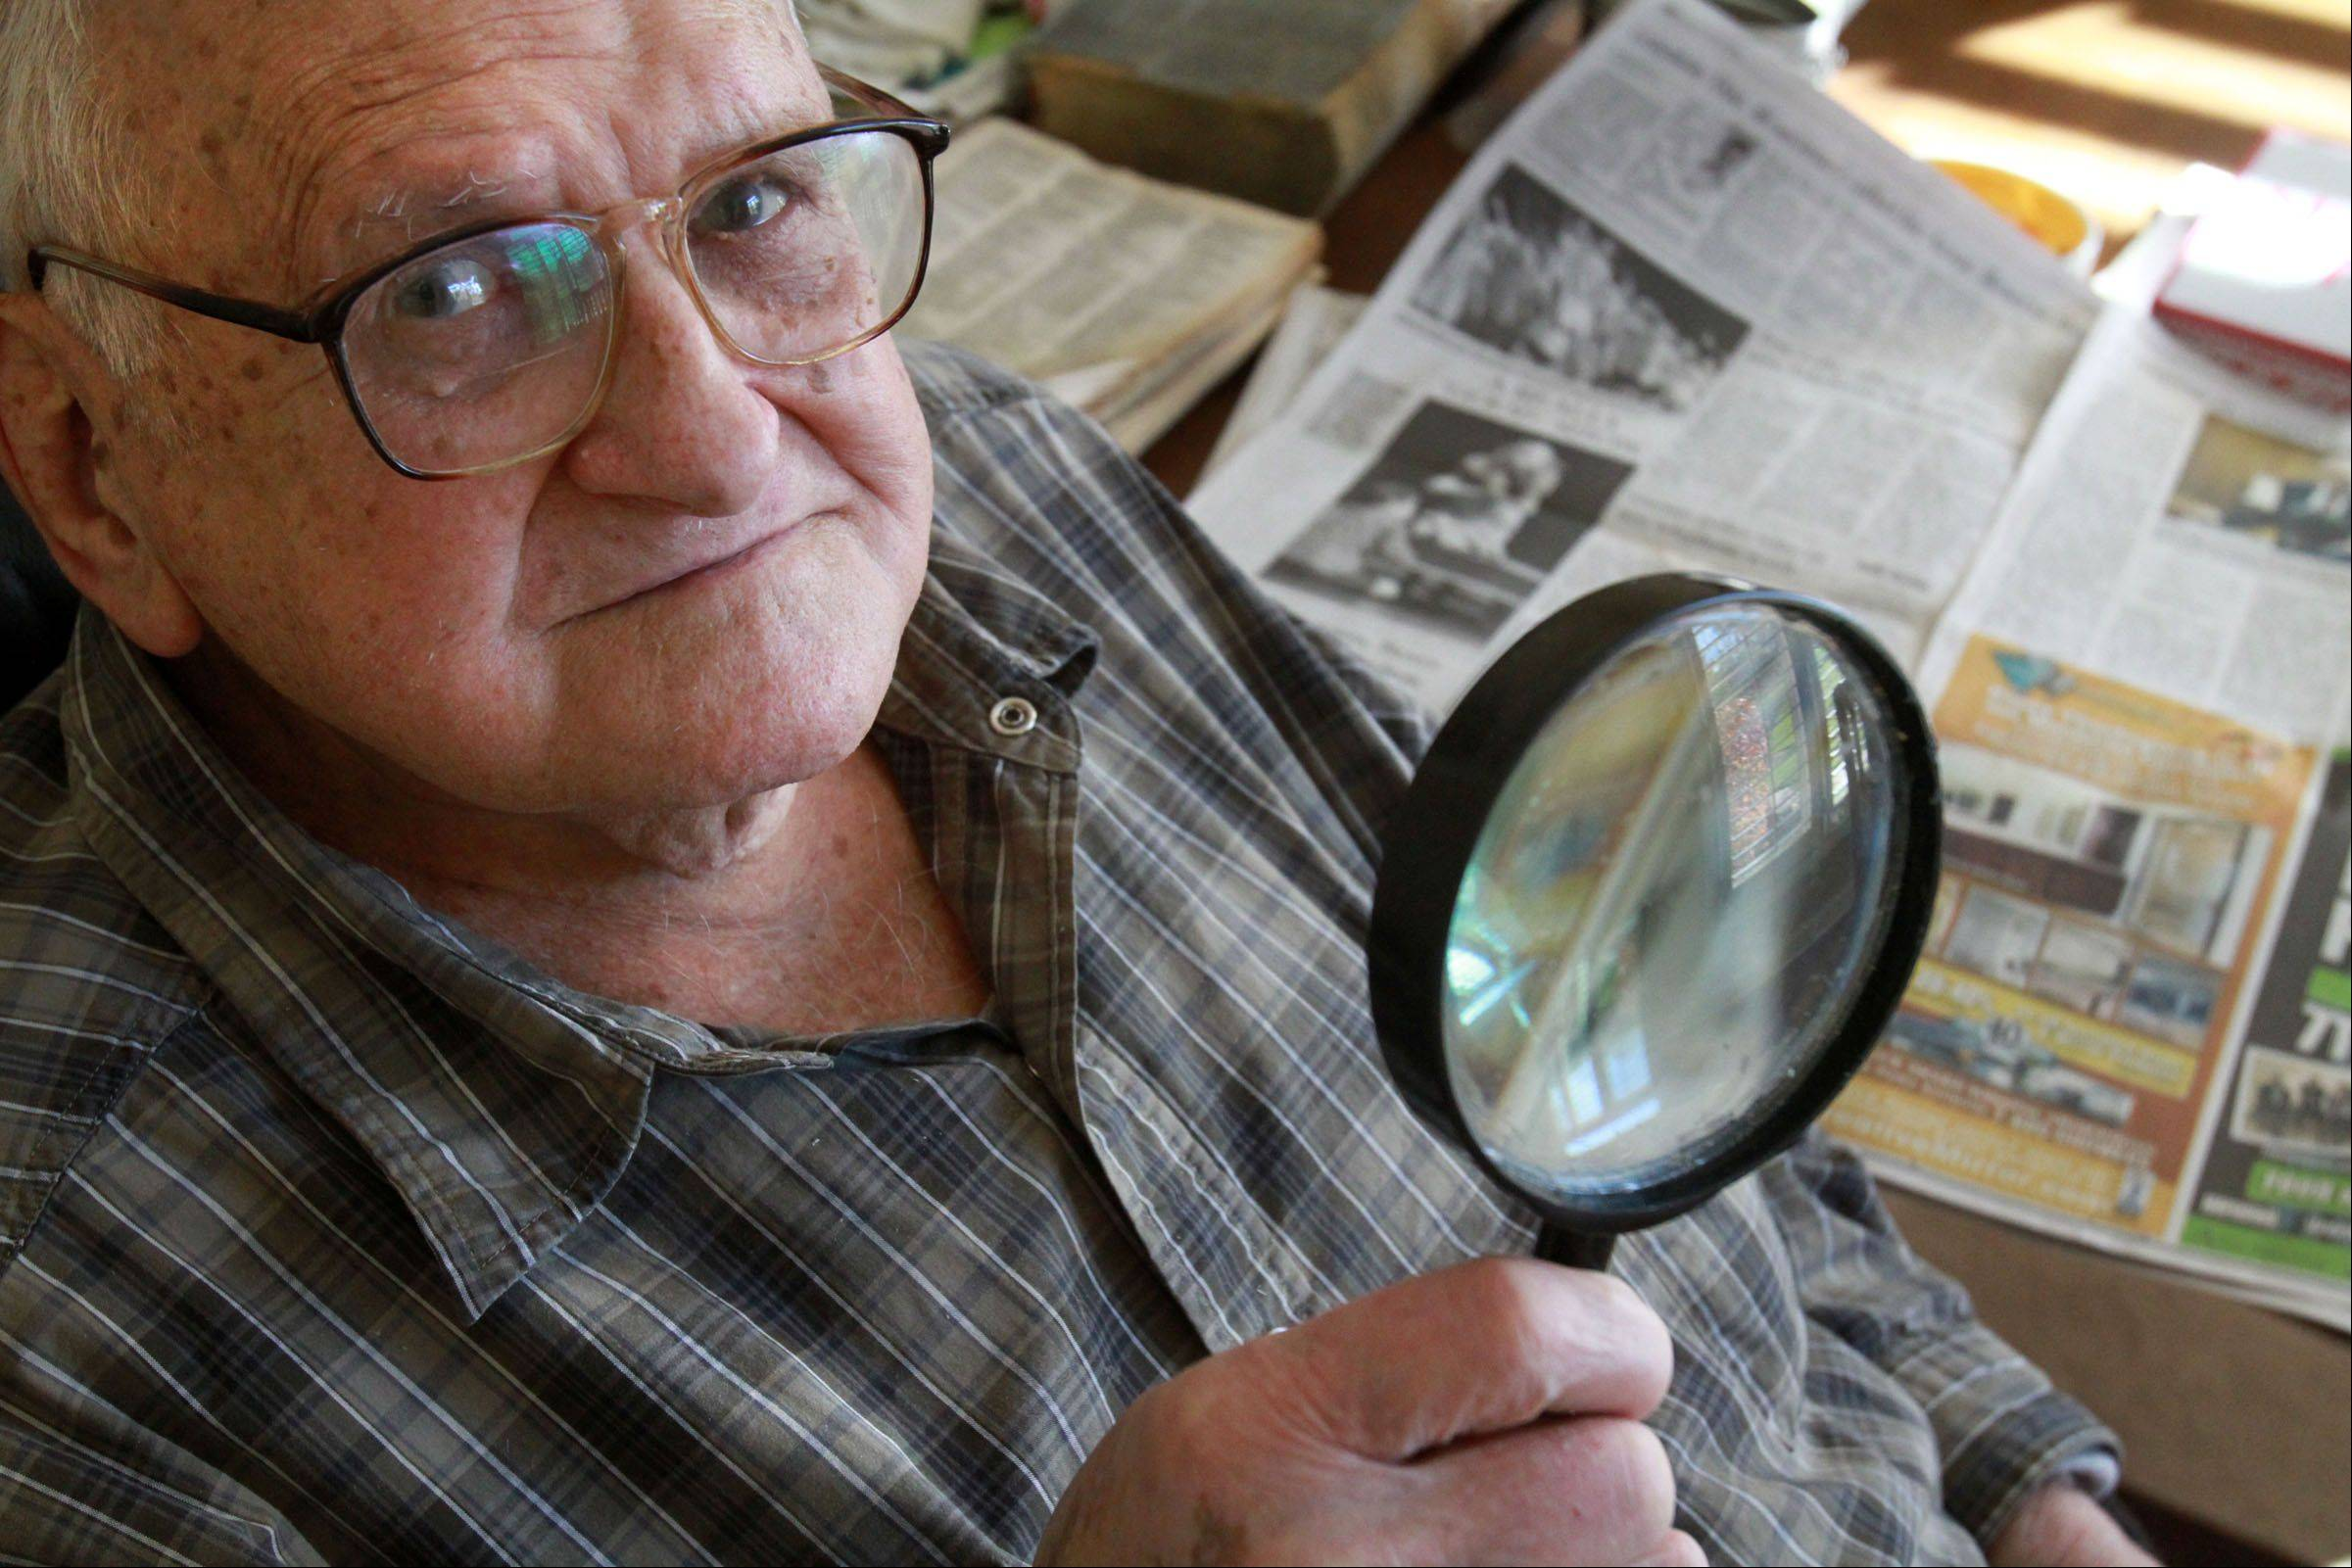 Romanian immigrant Steve Auer ignored his atrial fibrillation on Election Day until after he voted. The 93-year-old Lake Zurich man keeps a close eye on politics by reading three daily newspapers.